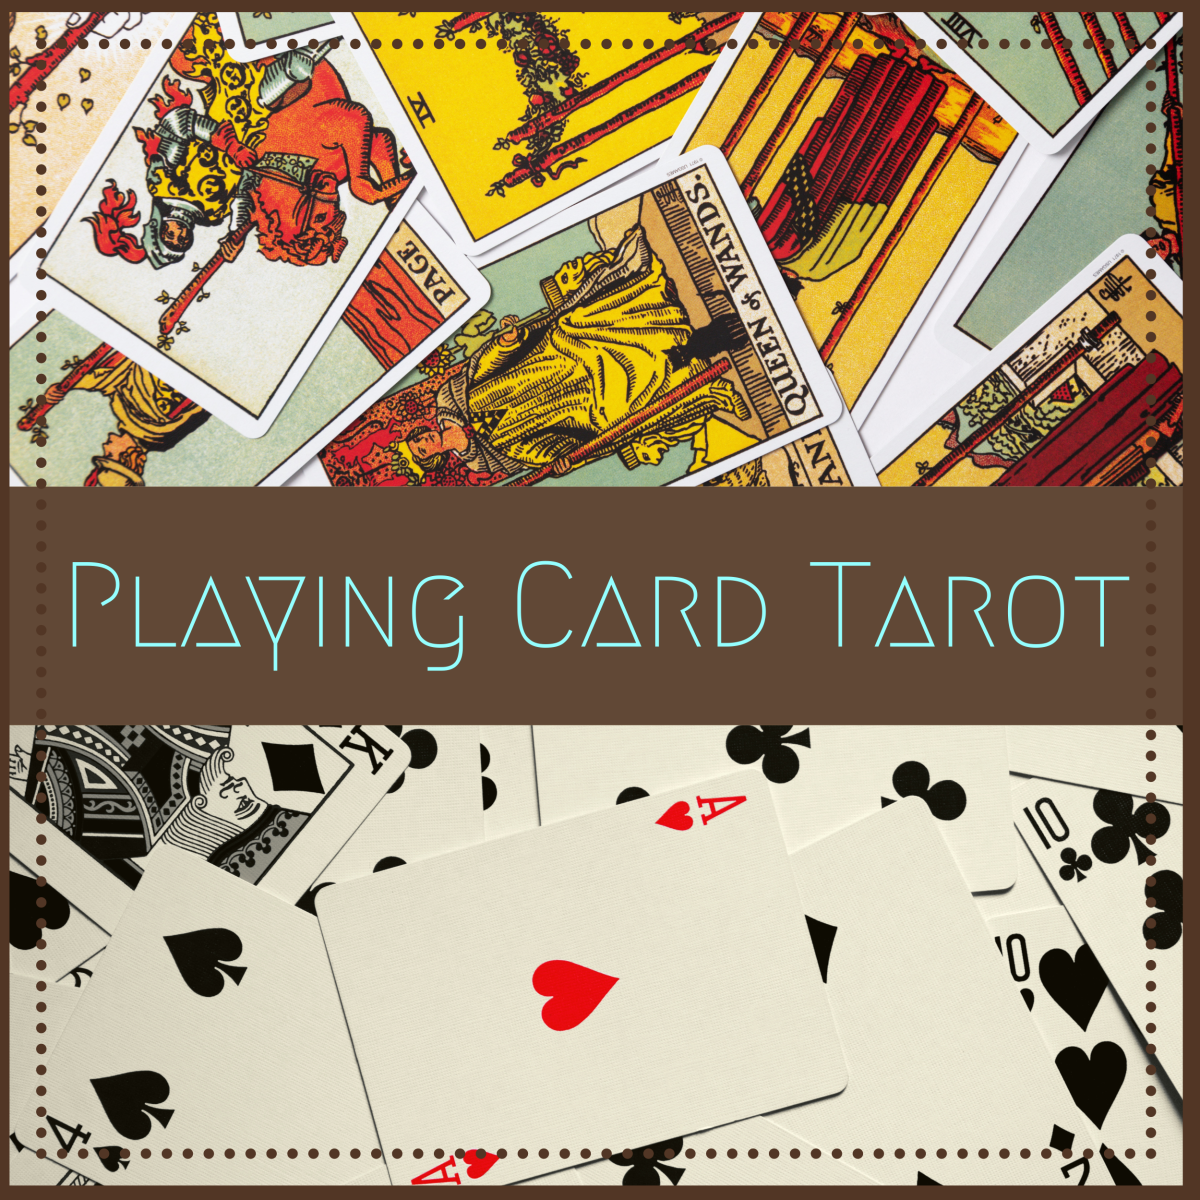 A list of meanings for when you're using playing cards to read tarot.